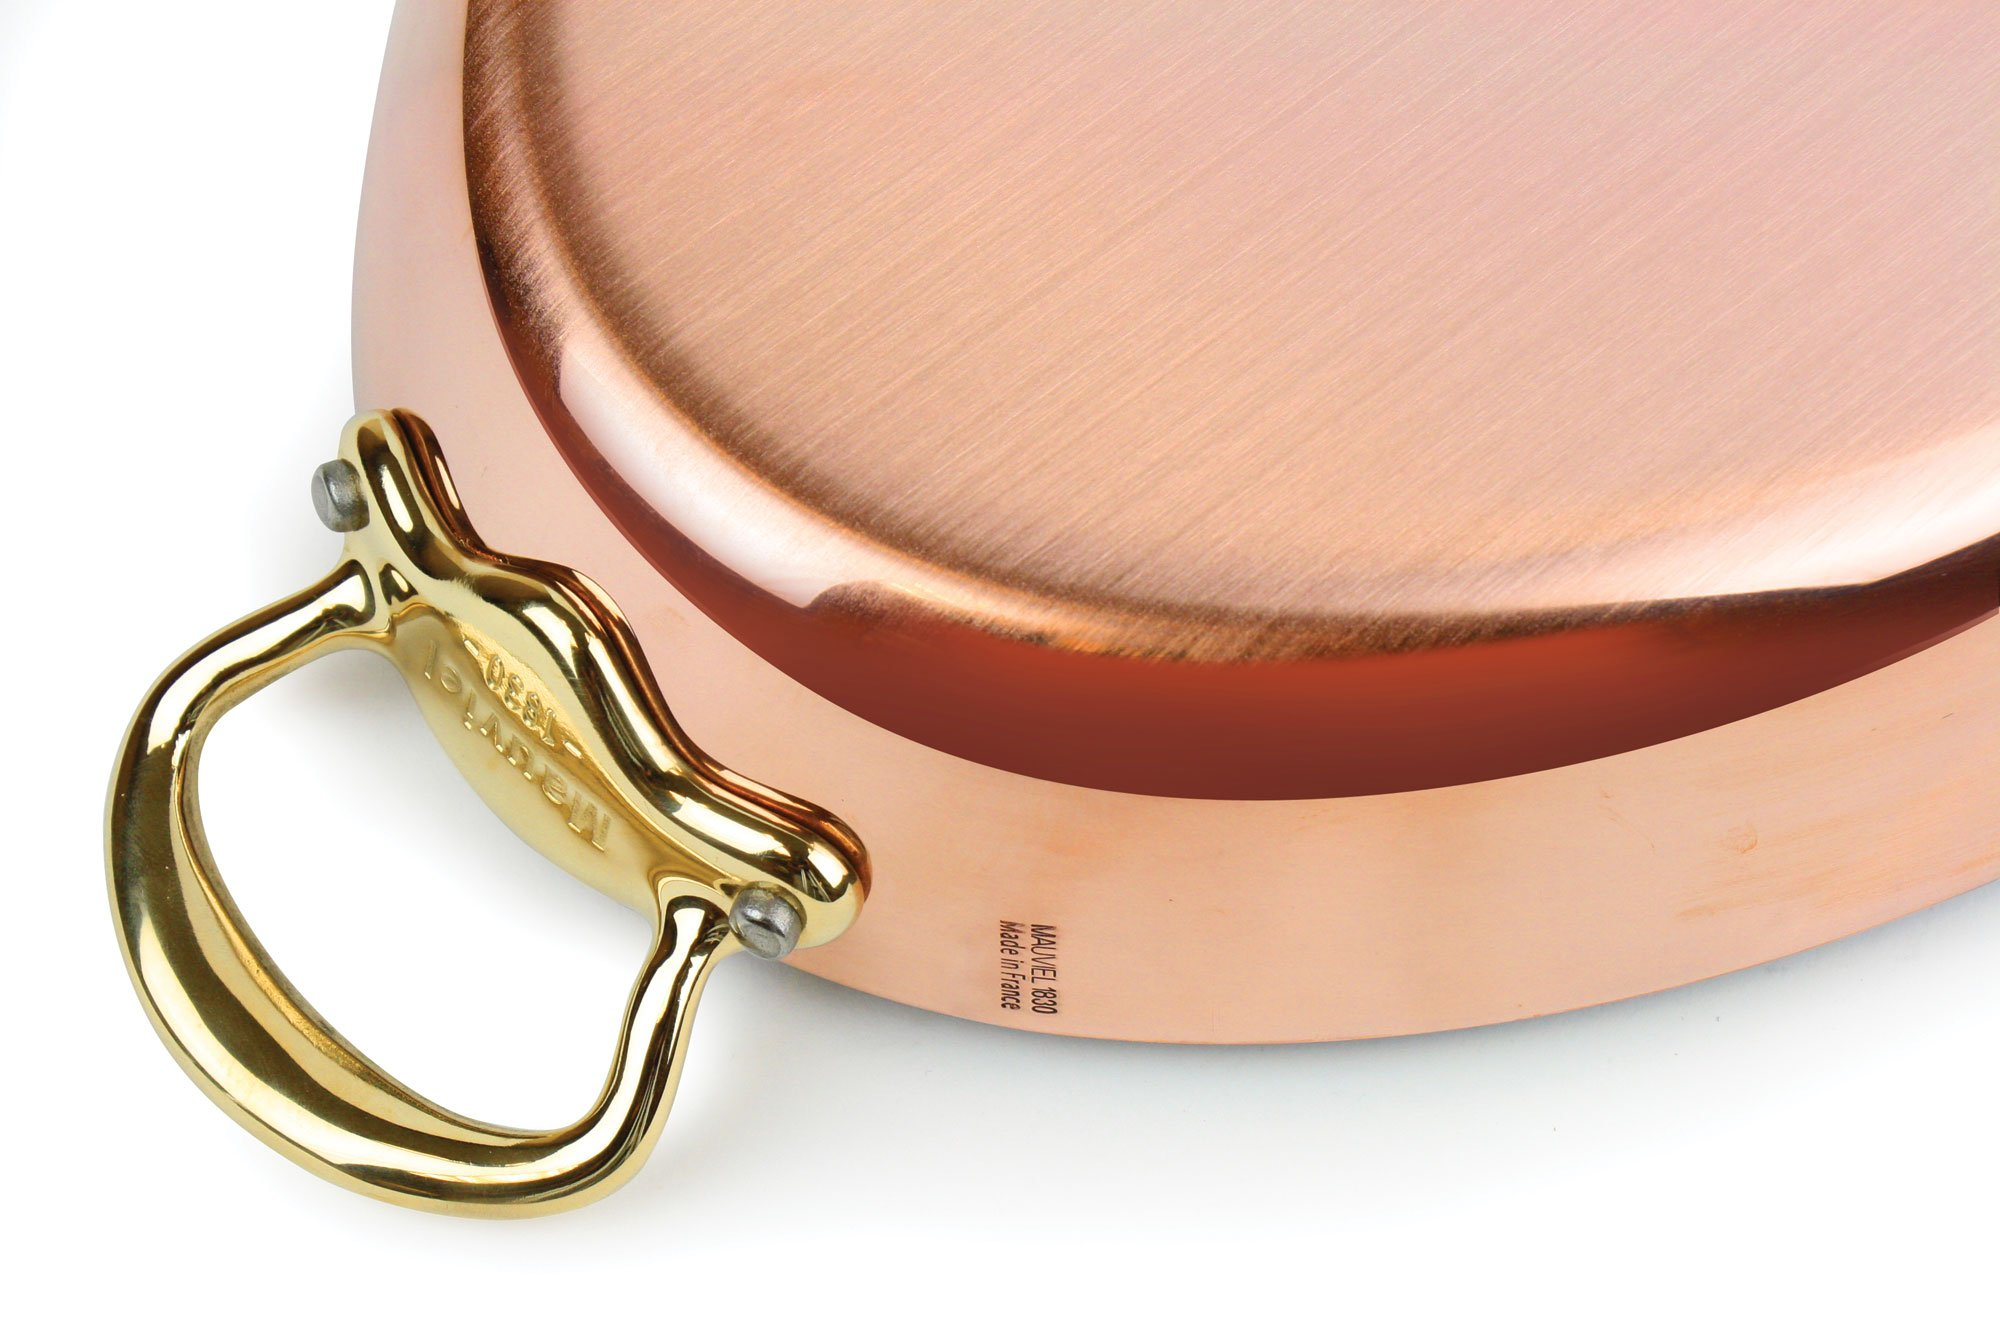 Mauviel 13.75 x 1.75-inch Copper Oval Au Gratin Pan with Bronze Handles by Mauviel (Image #4)